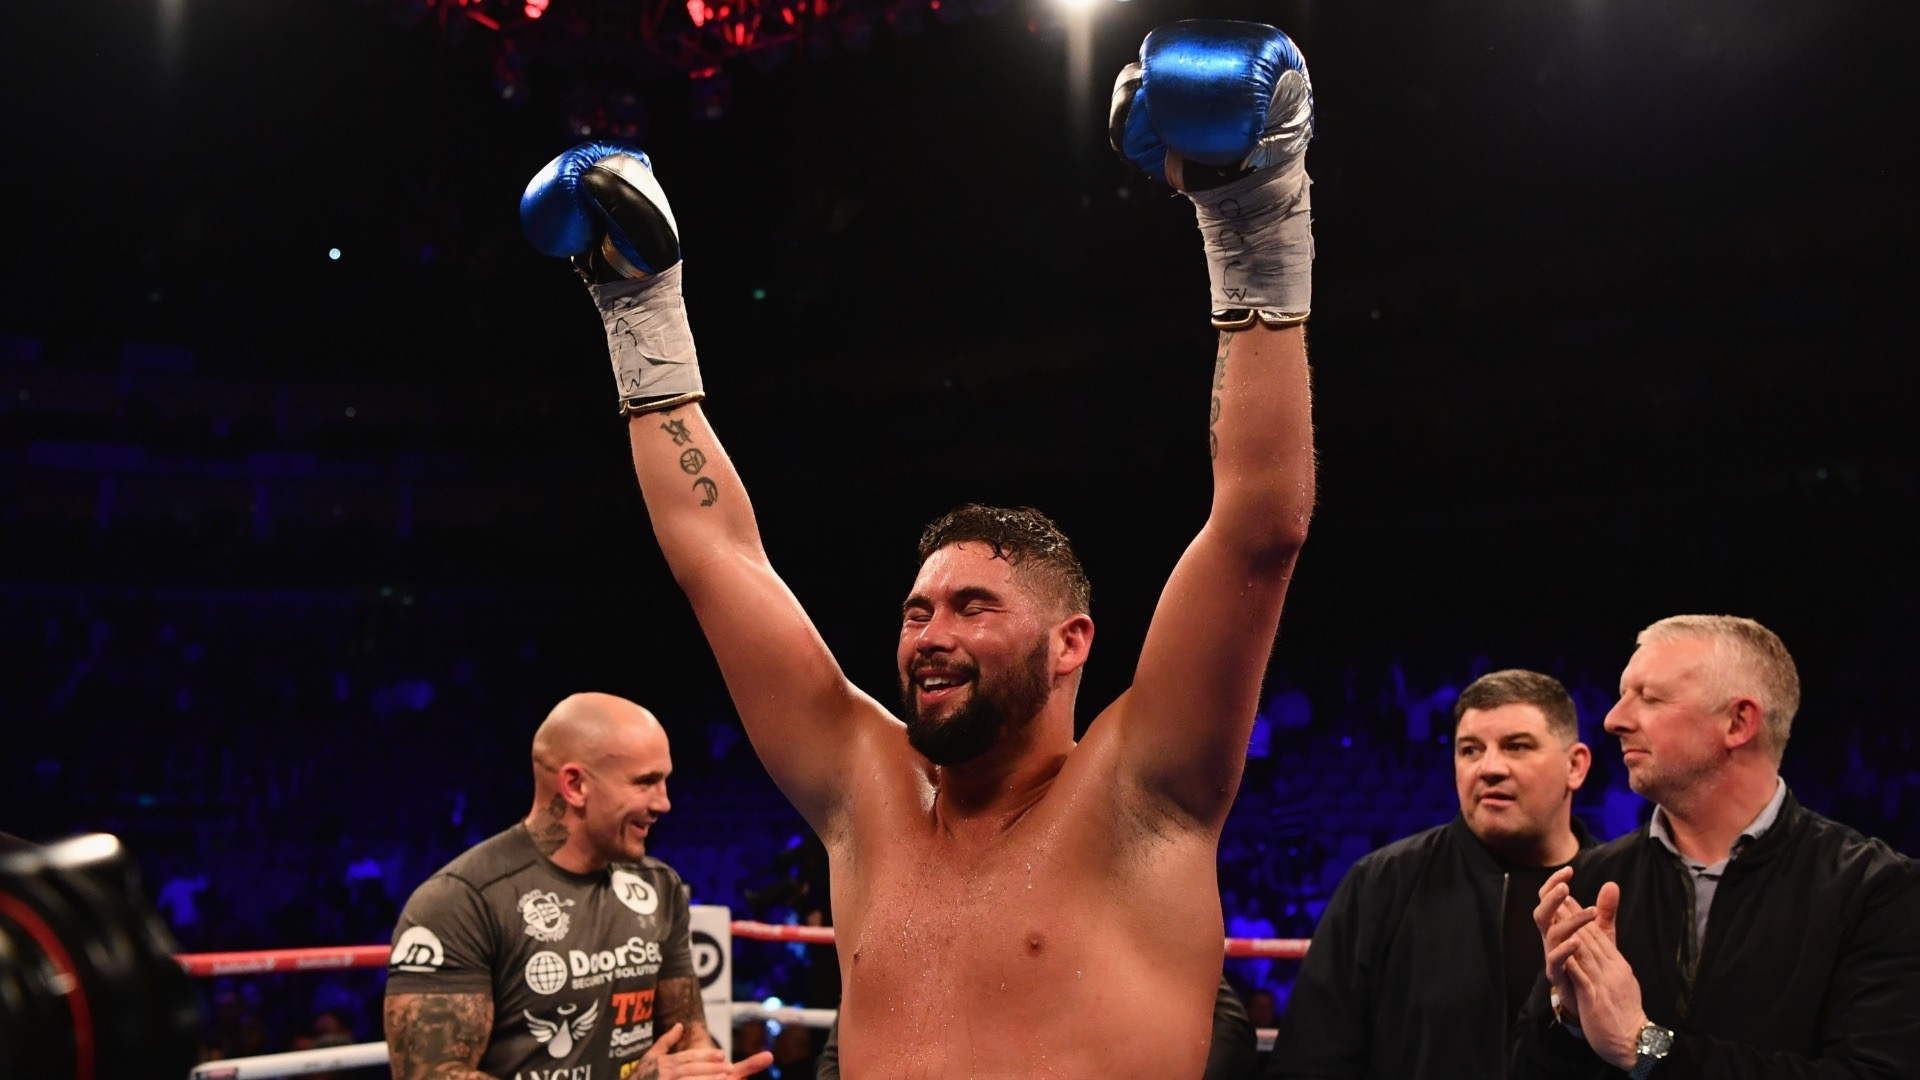 Tony Bellew Could Be Heading For UFC Bout After David Haye Postponement